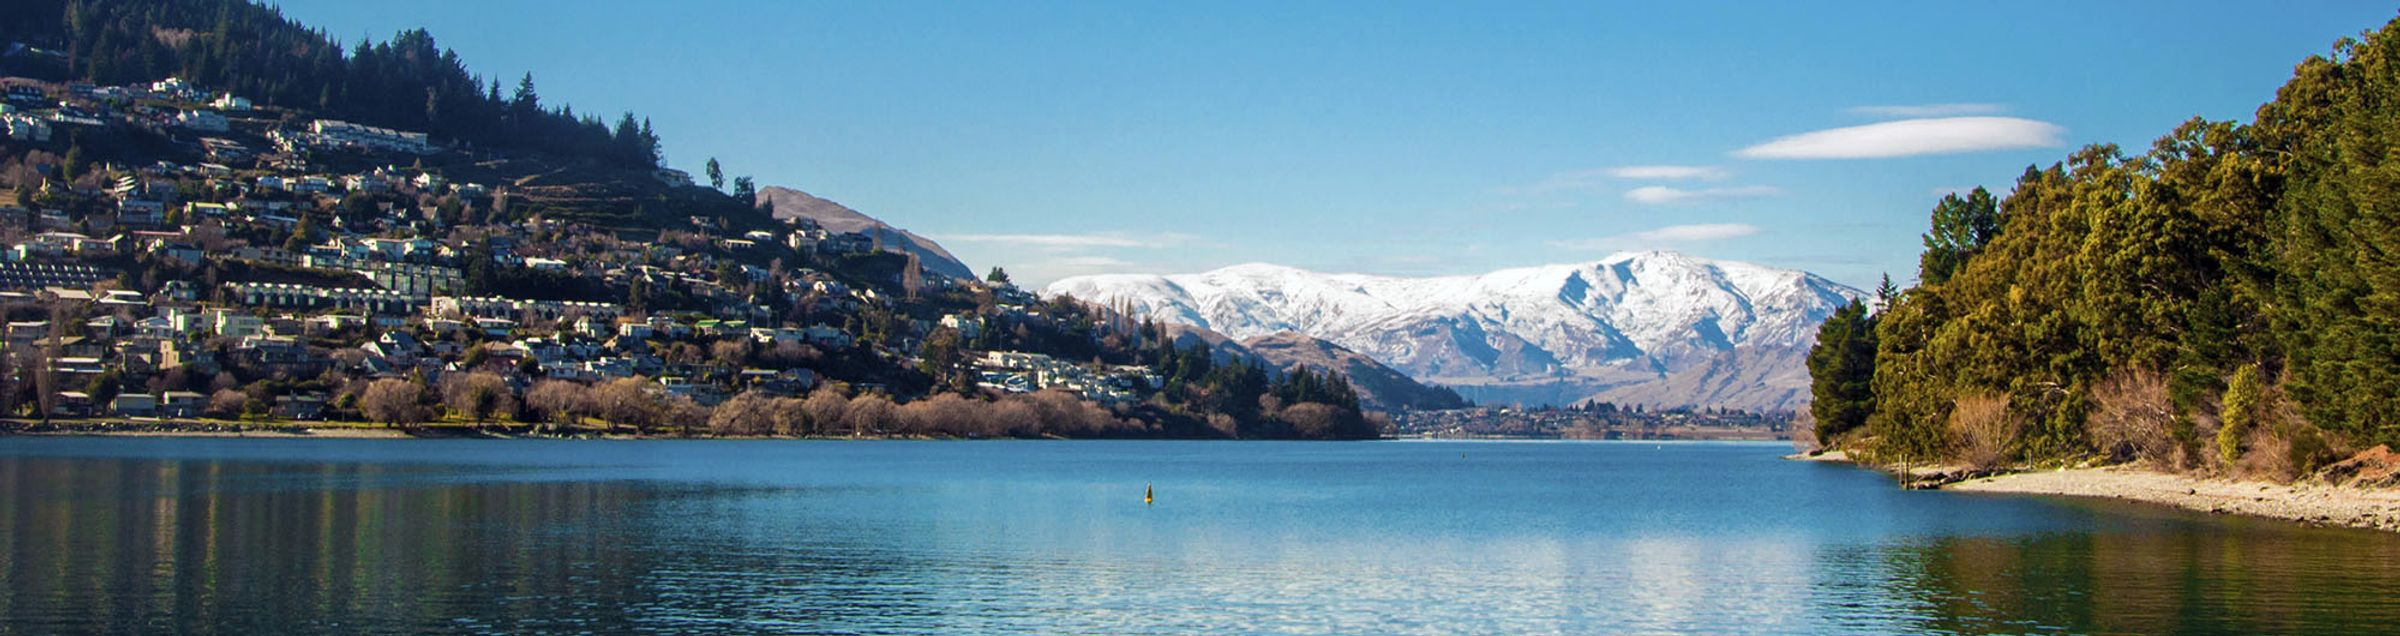 Distretto di Queenstown